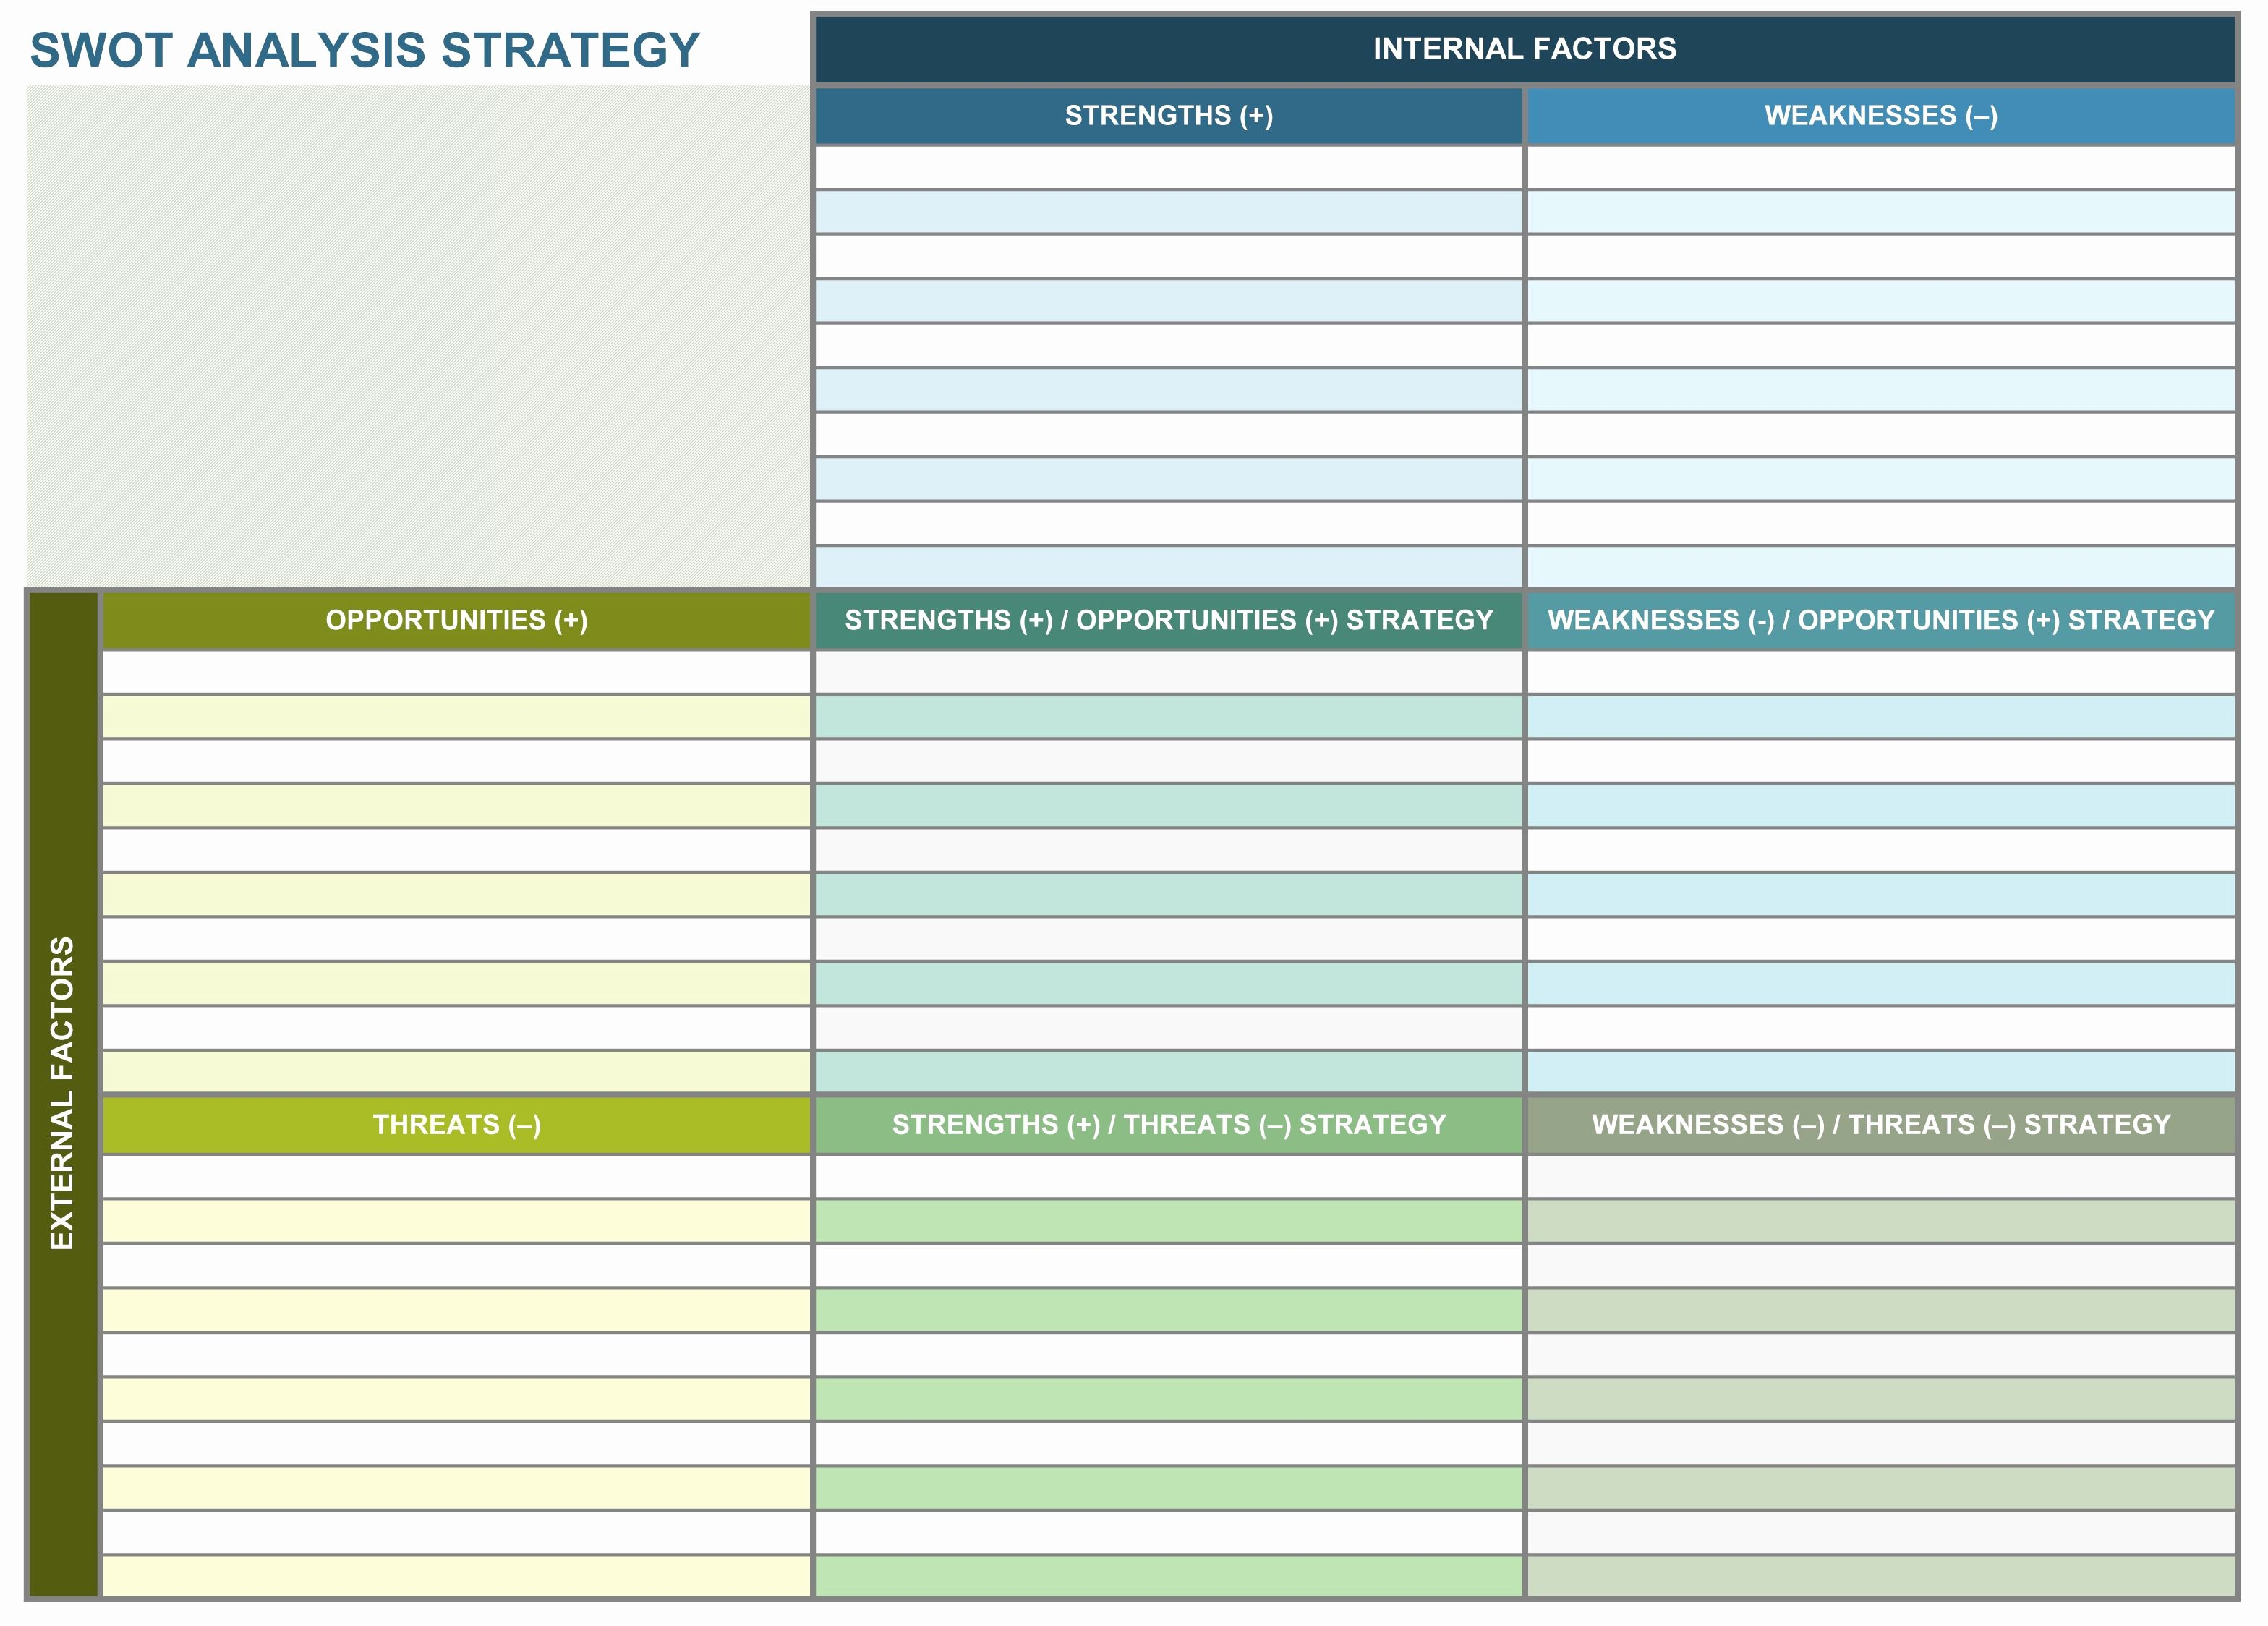 Strategic Plan Template Excel Fresh Swot Analysis Strategy Excel Template